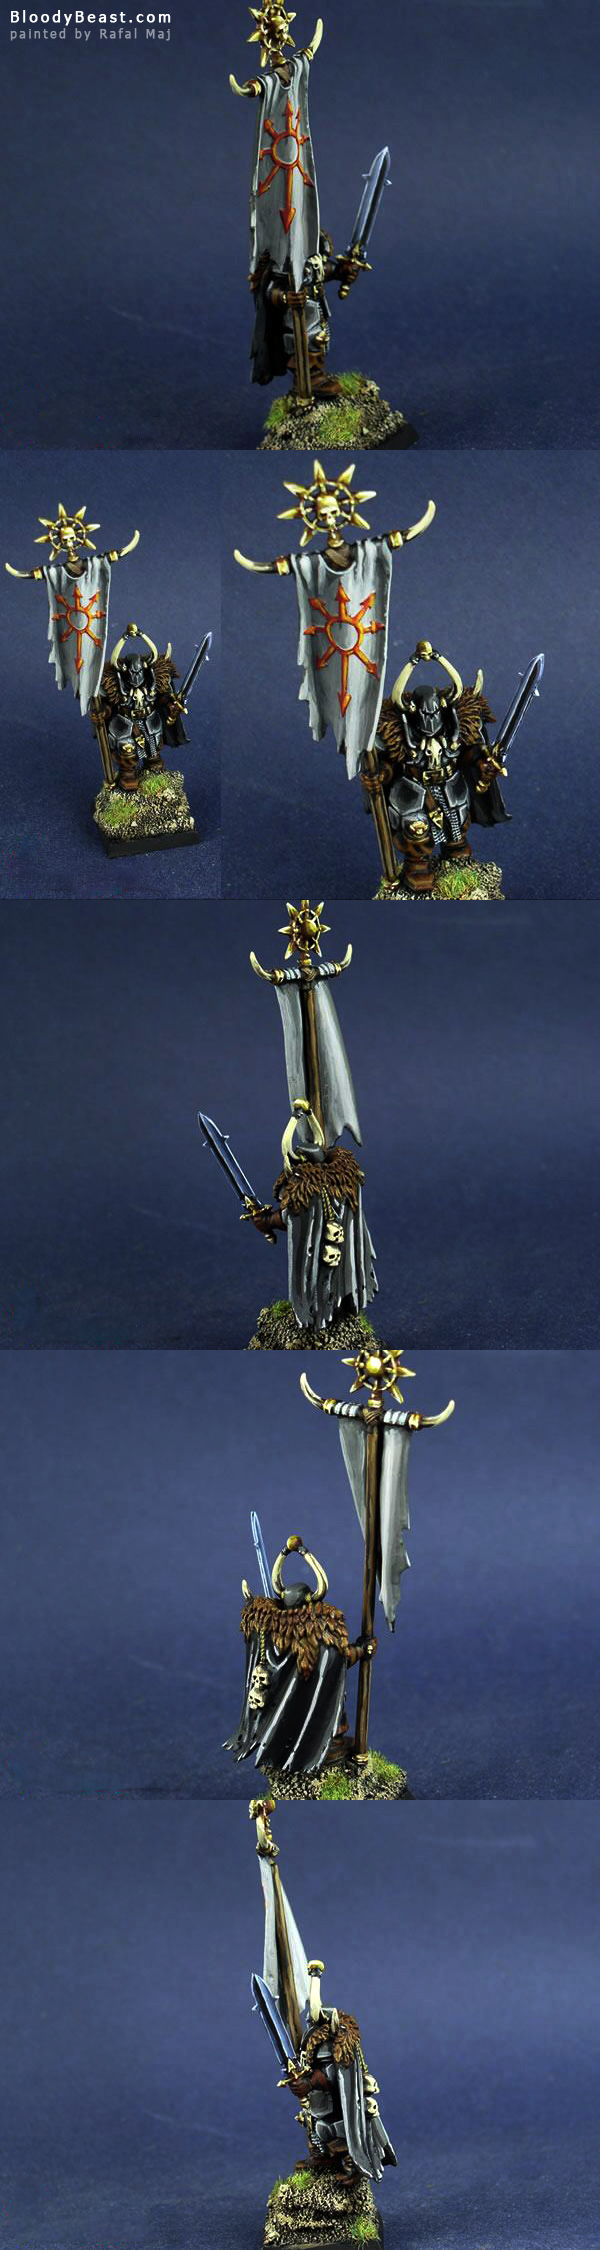 Chaos Standard Bearer of Undivided painted by Rafal Maj (BloodyBeast.com)